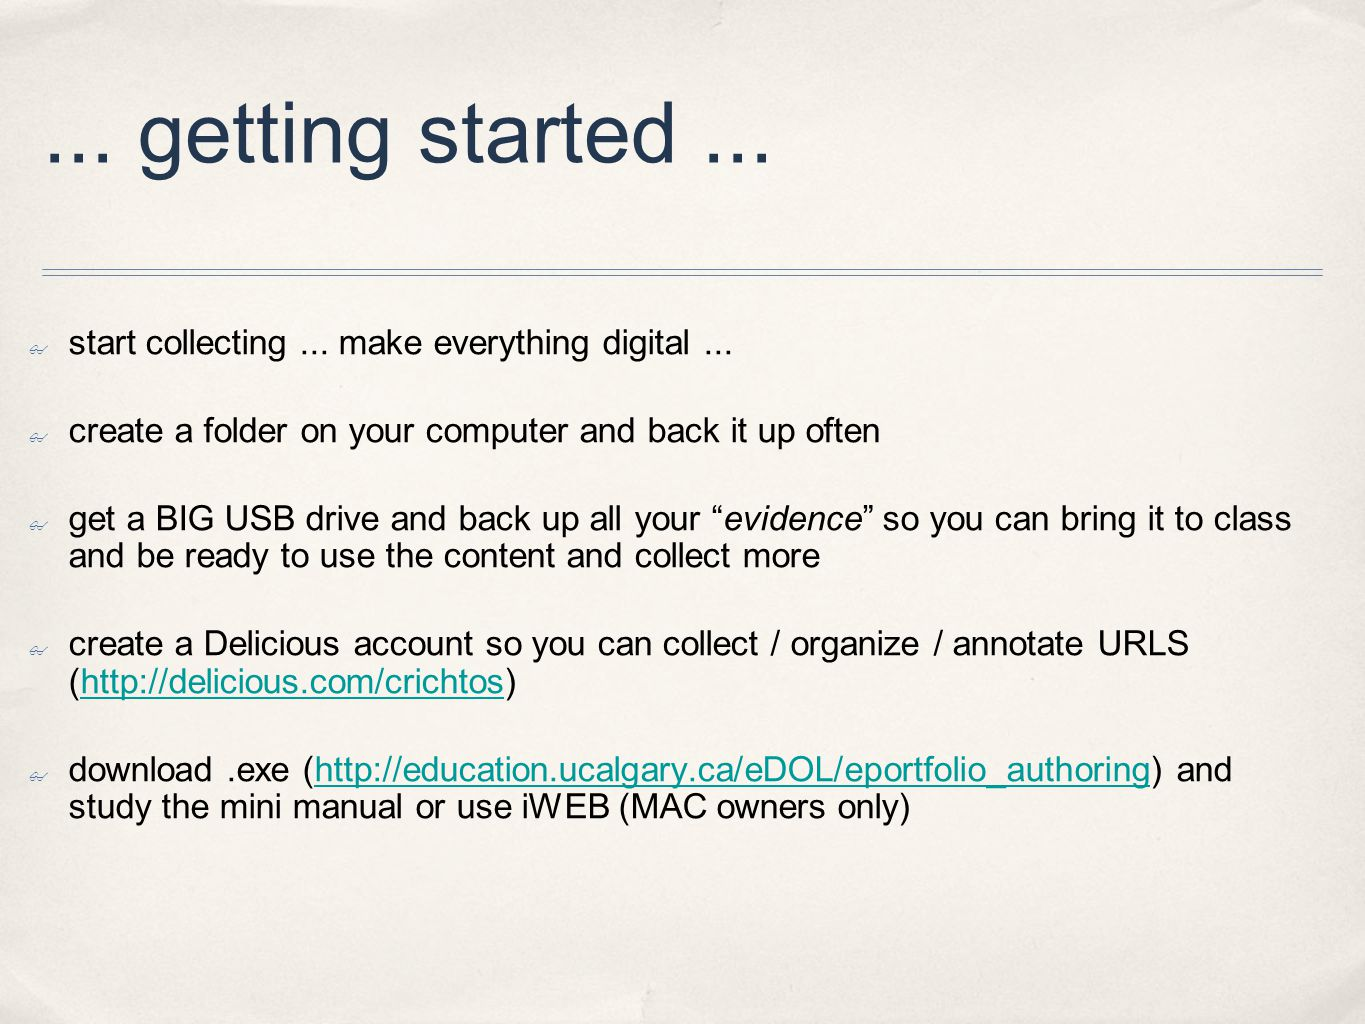 ... getting started... ✤ start collecting... make everything digital... ✤ create a folder on your computer and back it up often ✤ get a BIG USB drive